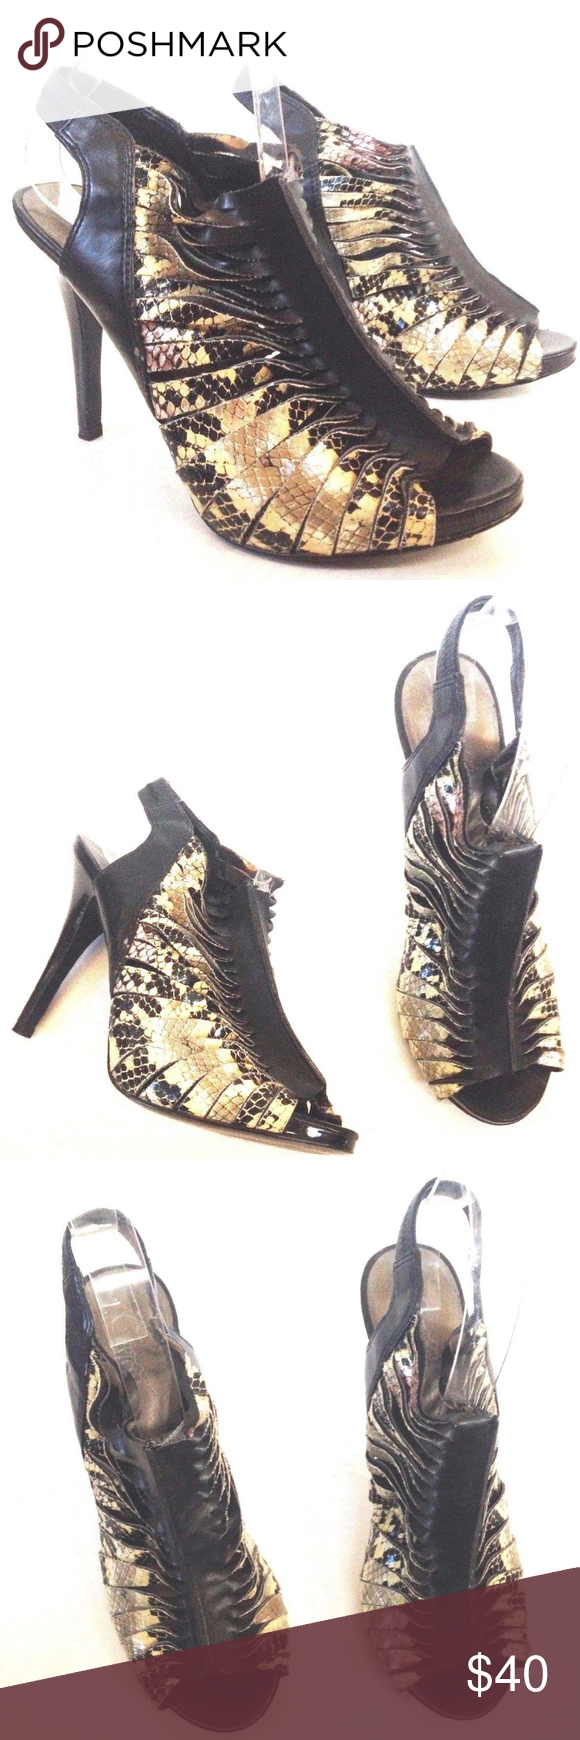 9ffd6f3548 CARLOS TWISTED SNAKE PRINT CUT OUT PEEP ANKLE HEEL CARLOS SANTANA  TWISTED   Great sandals